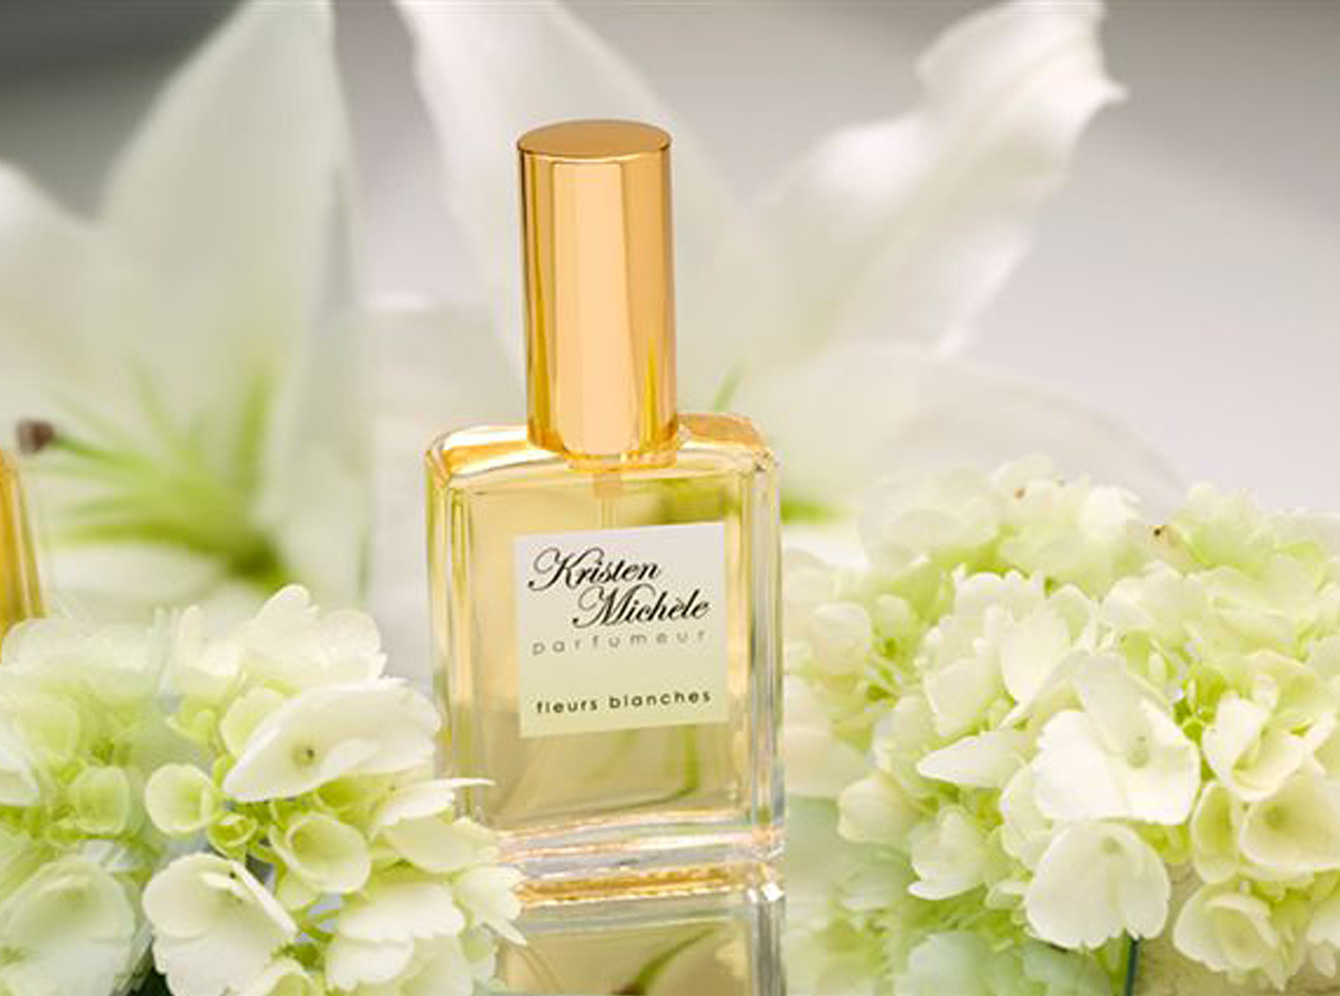 Fkeurs Fleurs Blanches Kristen Michele Perfume A Fragrance For